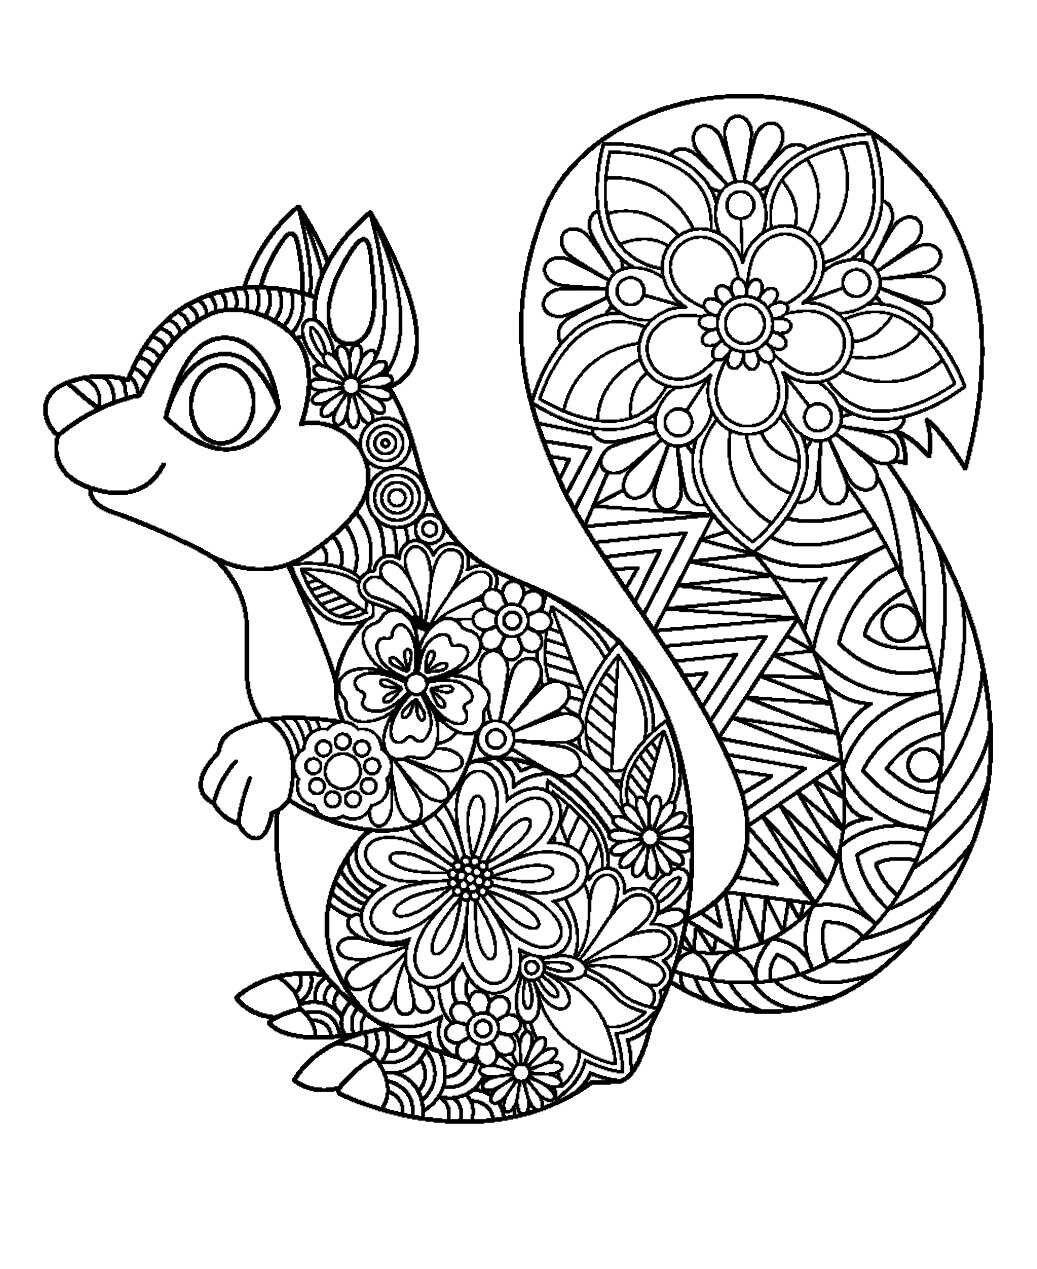 Pin By Kortney Ross On Coloring Pages Coloring Pages Coloring Books Mosaic Patterns